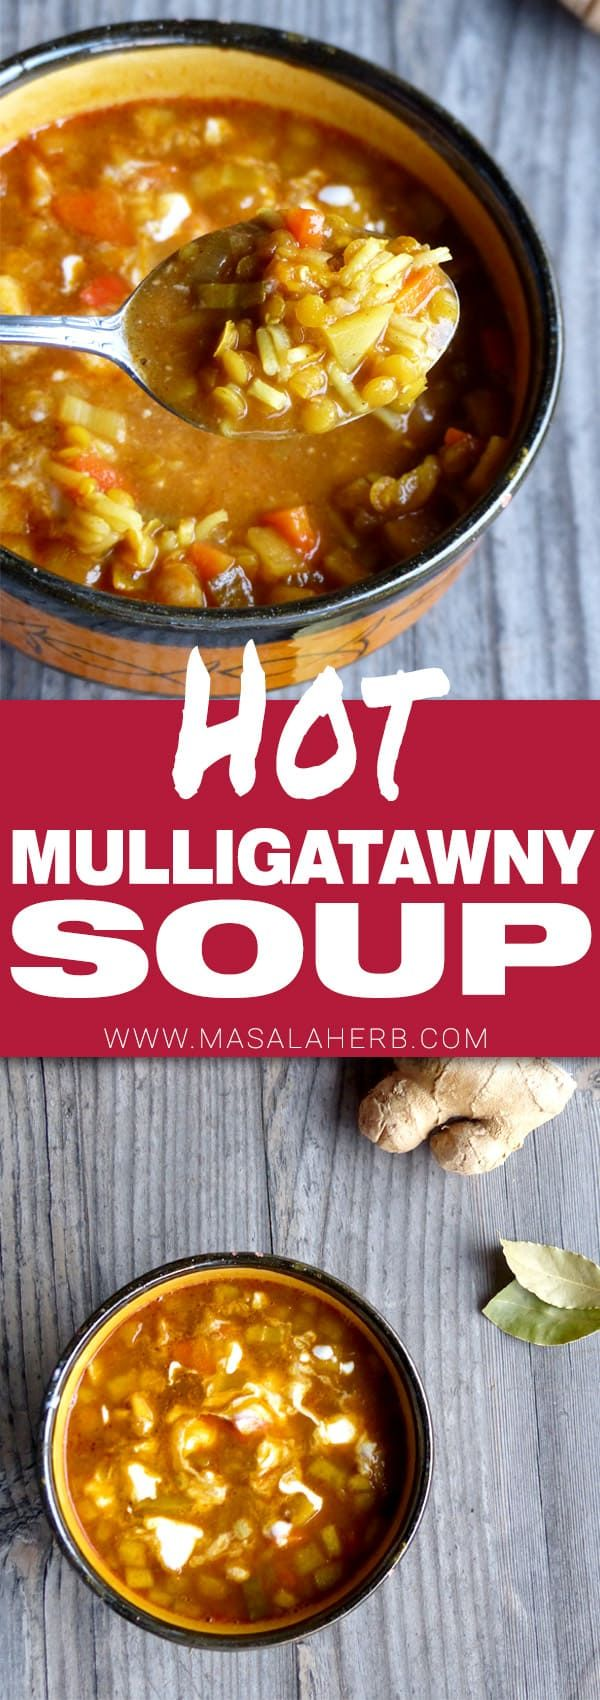 Wholesome Mulligatawny Soup Recipe with Chicken � MasalaHerb.com